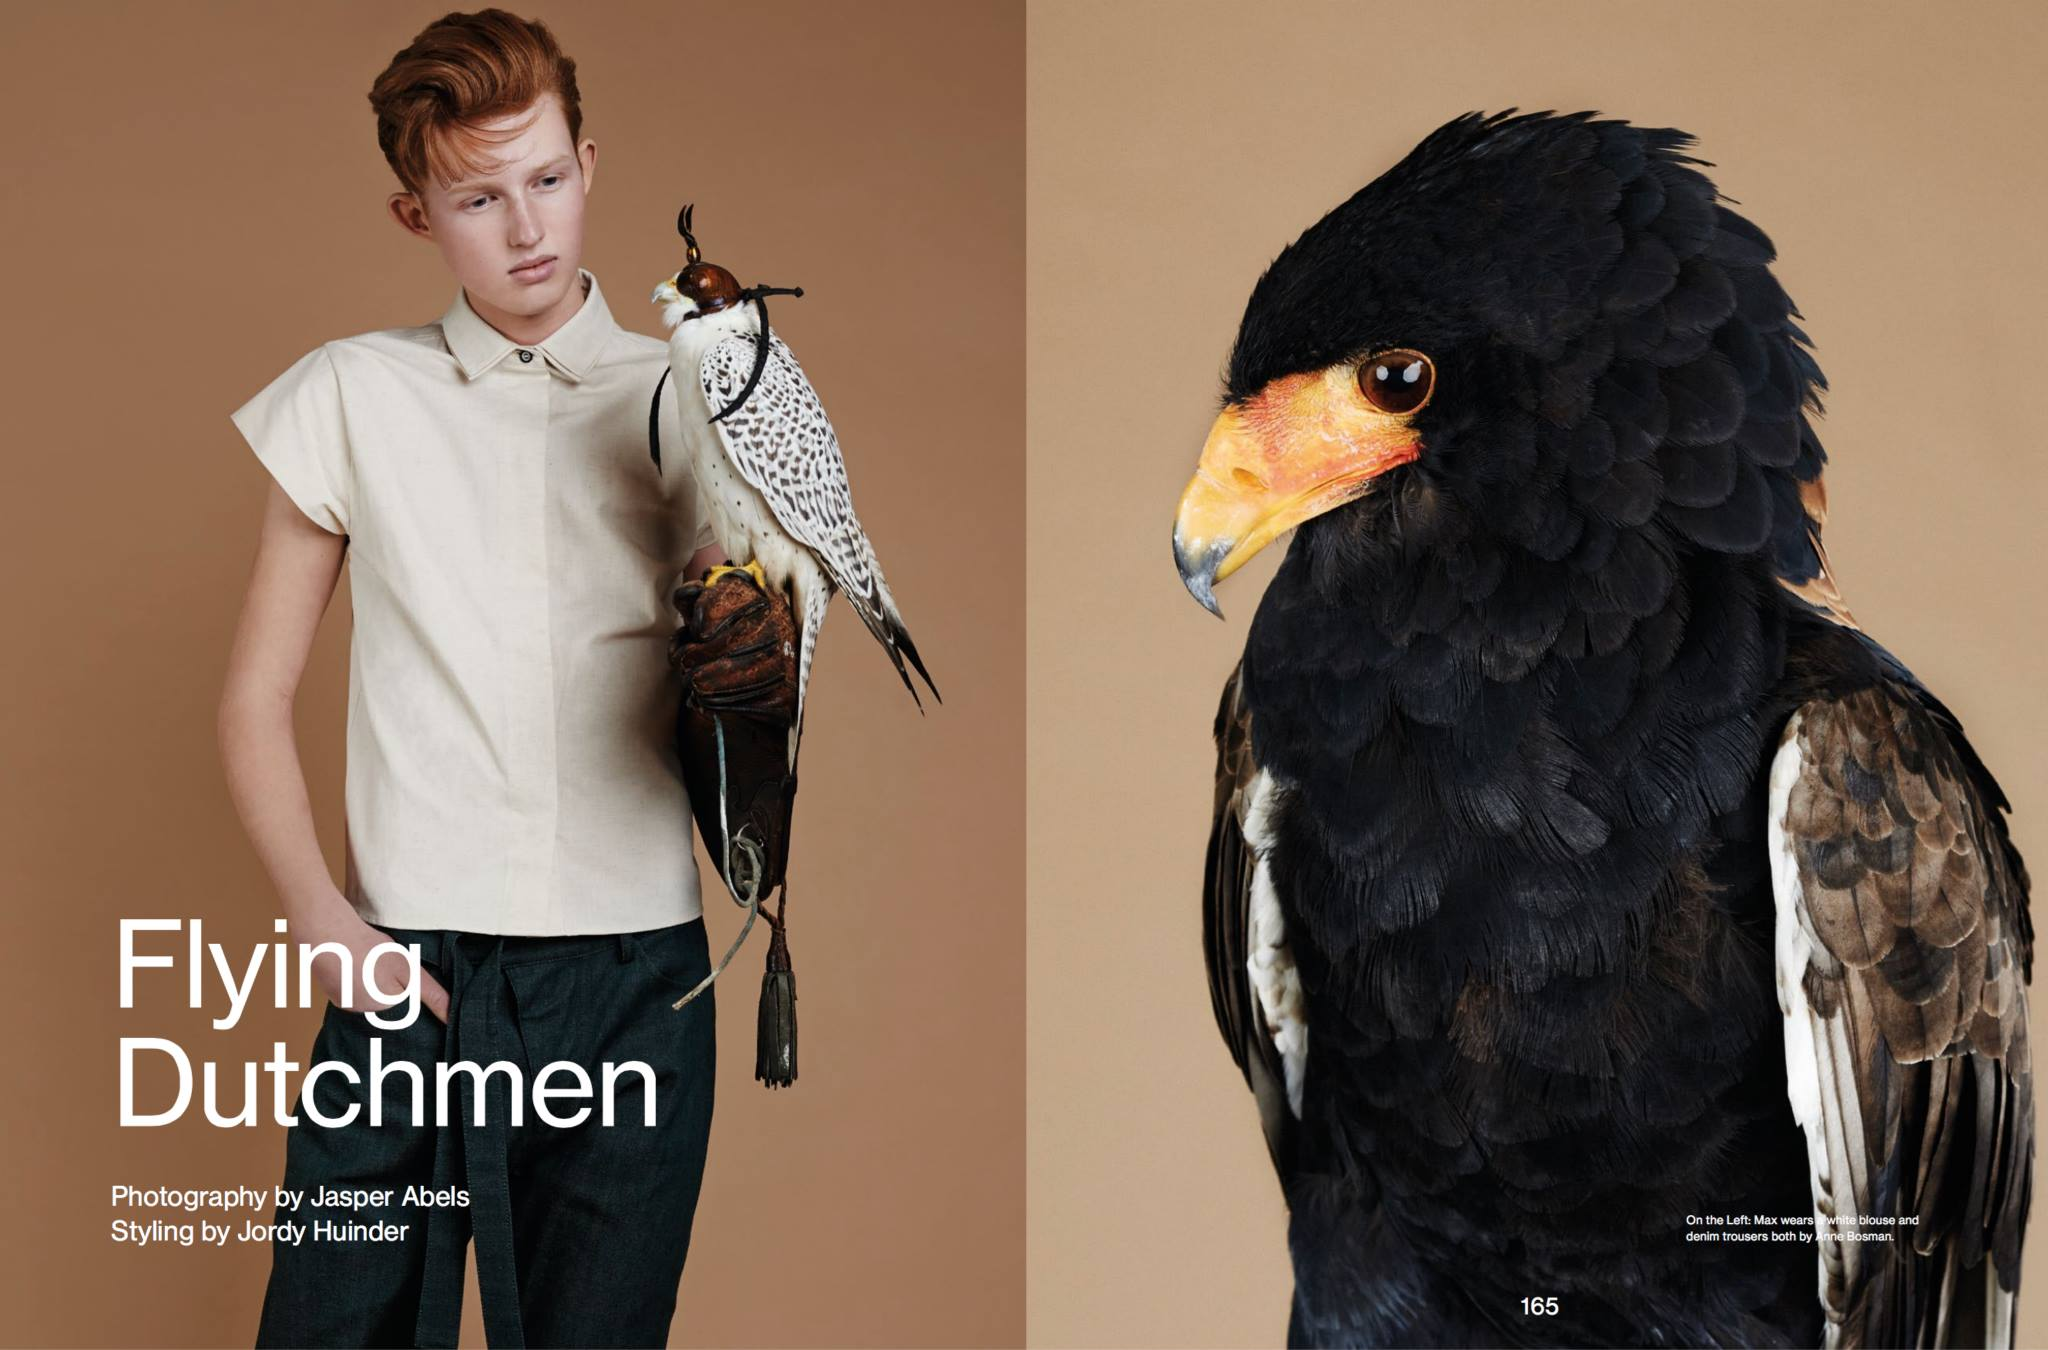 FLYING DUTCHMEN // Prestage Magazine captured a beautiful editorial Jasper Abels inspirational edition with beautiful birds, stylist: Jordy Huinder. Models Max Frentz and Sebastian Gelton at Brooks Modeling Agency, Luc van Geffen at Republic Men, Jordy Gerritsma at Alpha Male Model Management, William Los, Sam Lammas and Johannes Spaas at Ulla Models.